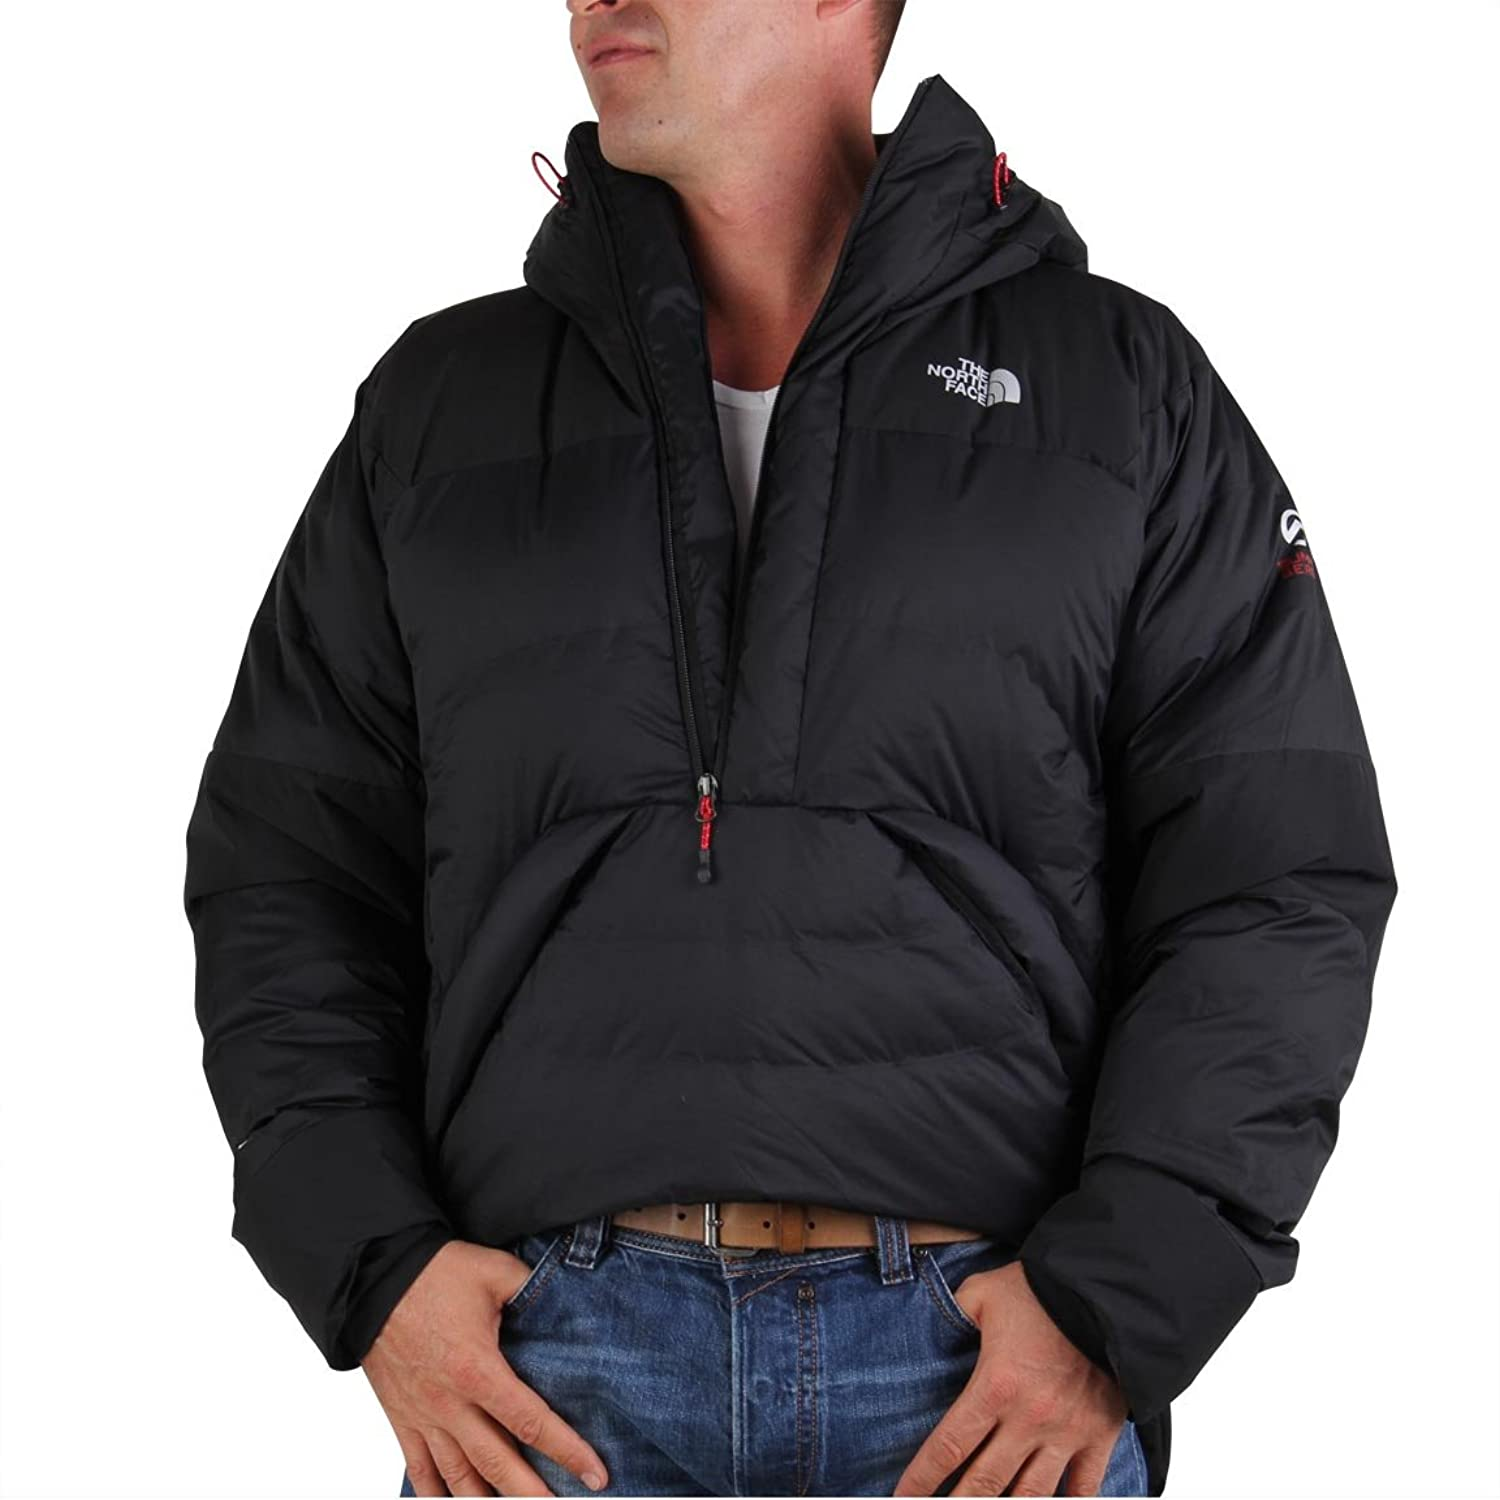 THE NORTH FACE Herren Winter Daunen Schlupf Jacke Sharksfin Belay Black günstig bestellen